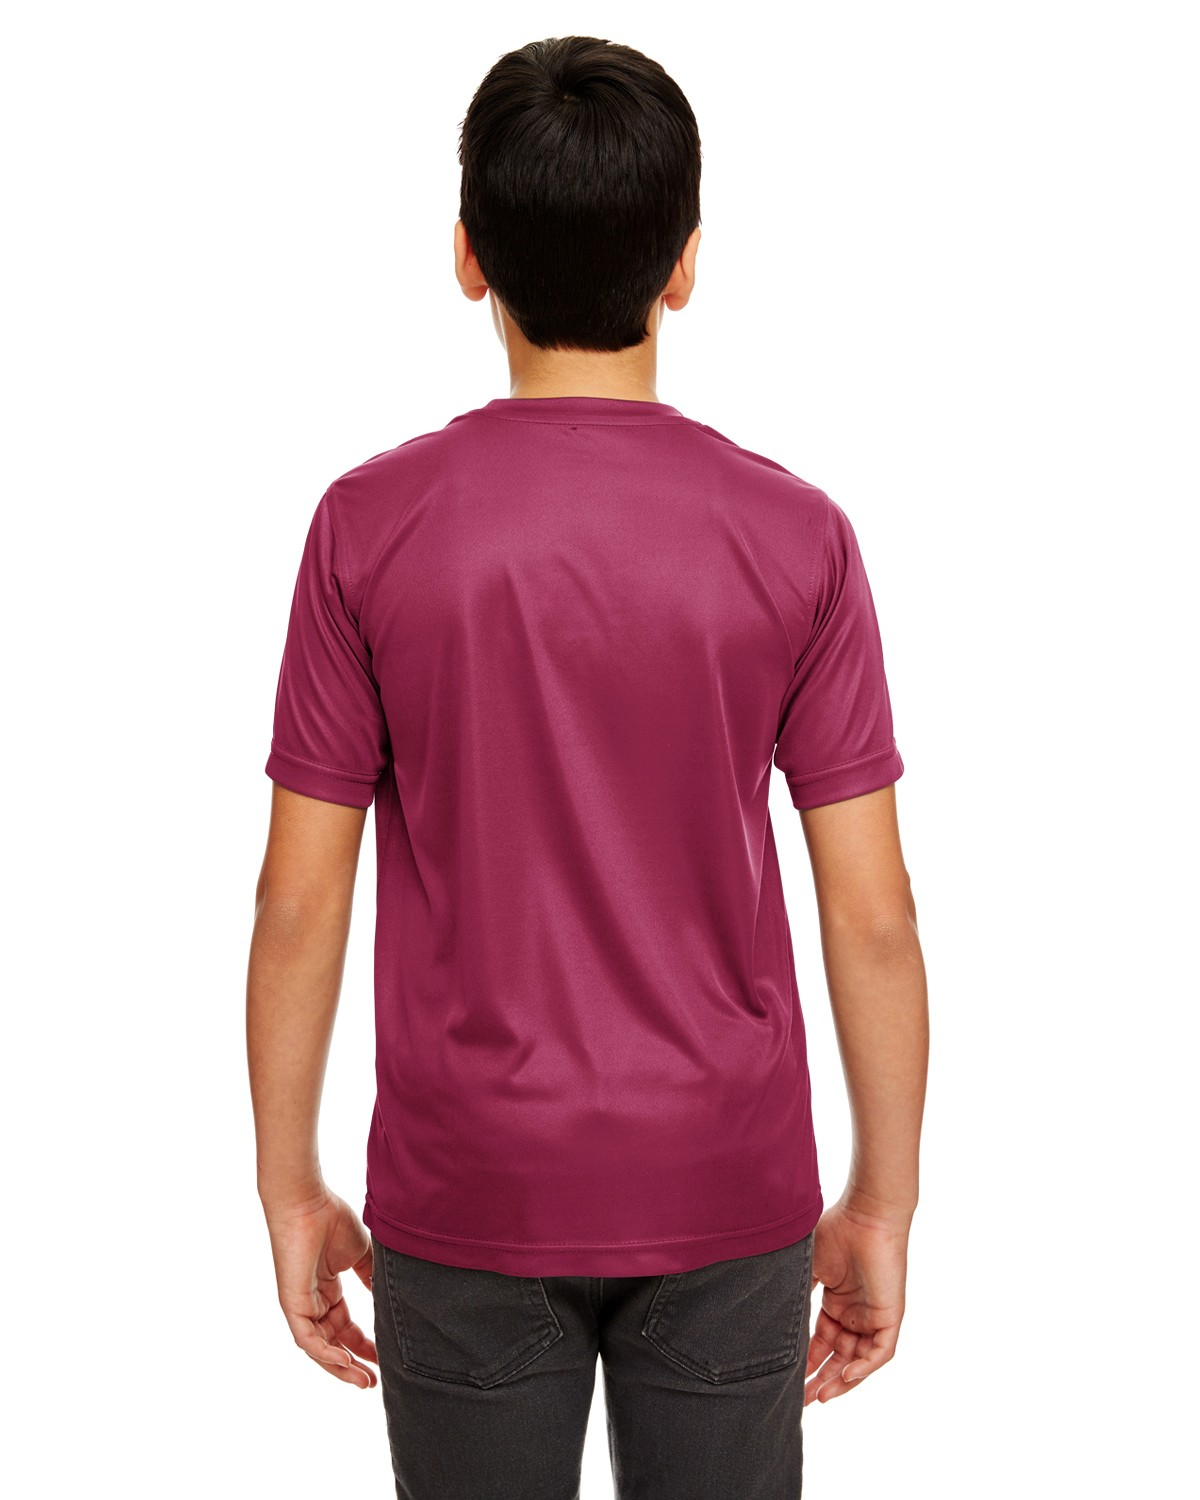 8420Y UltraClub MAROON